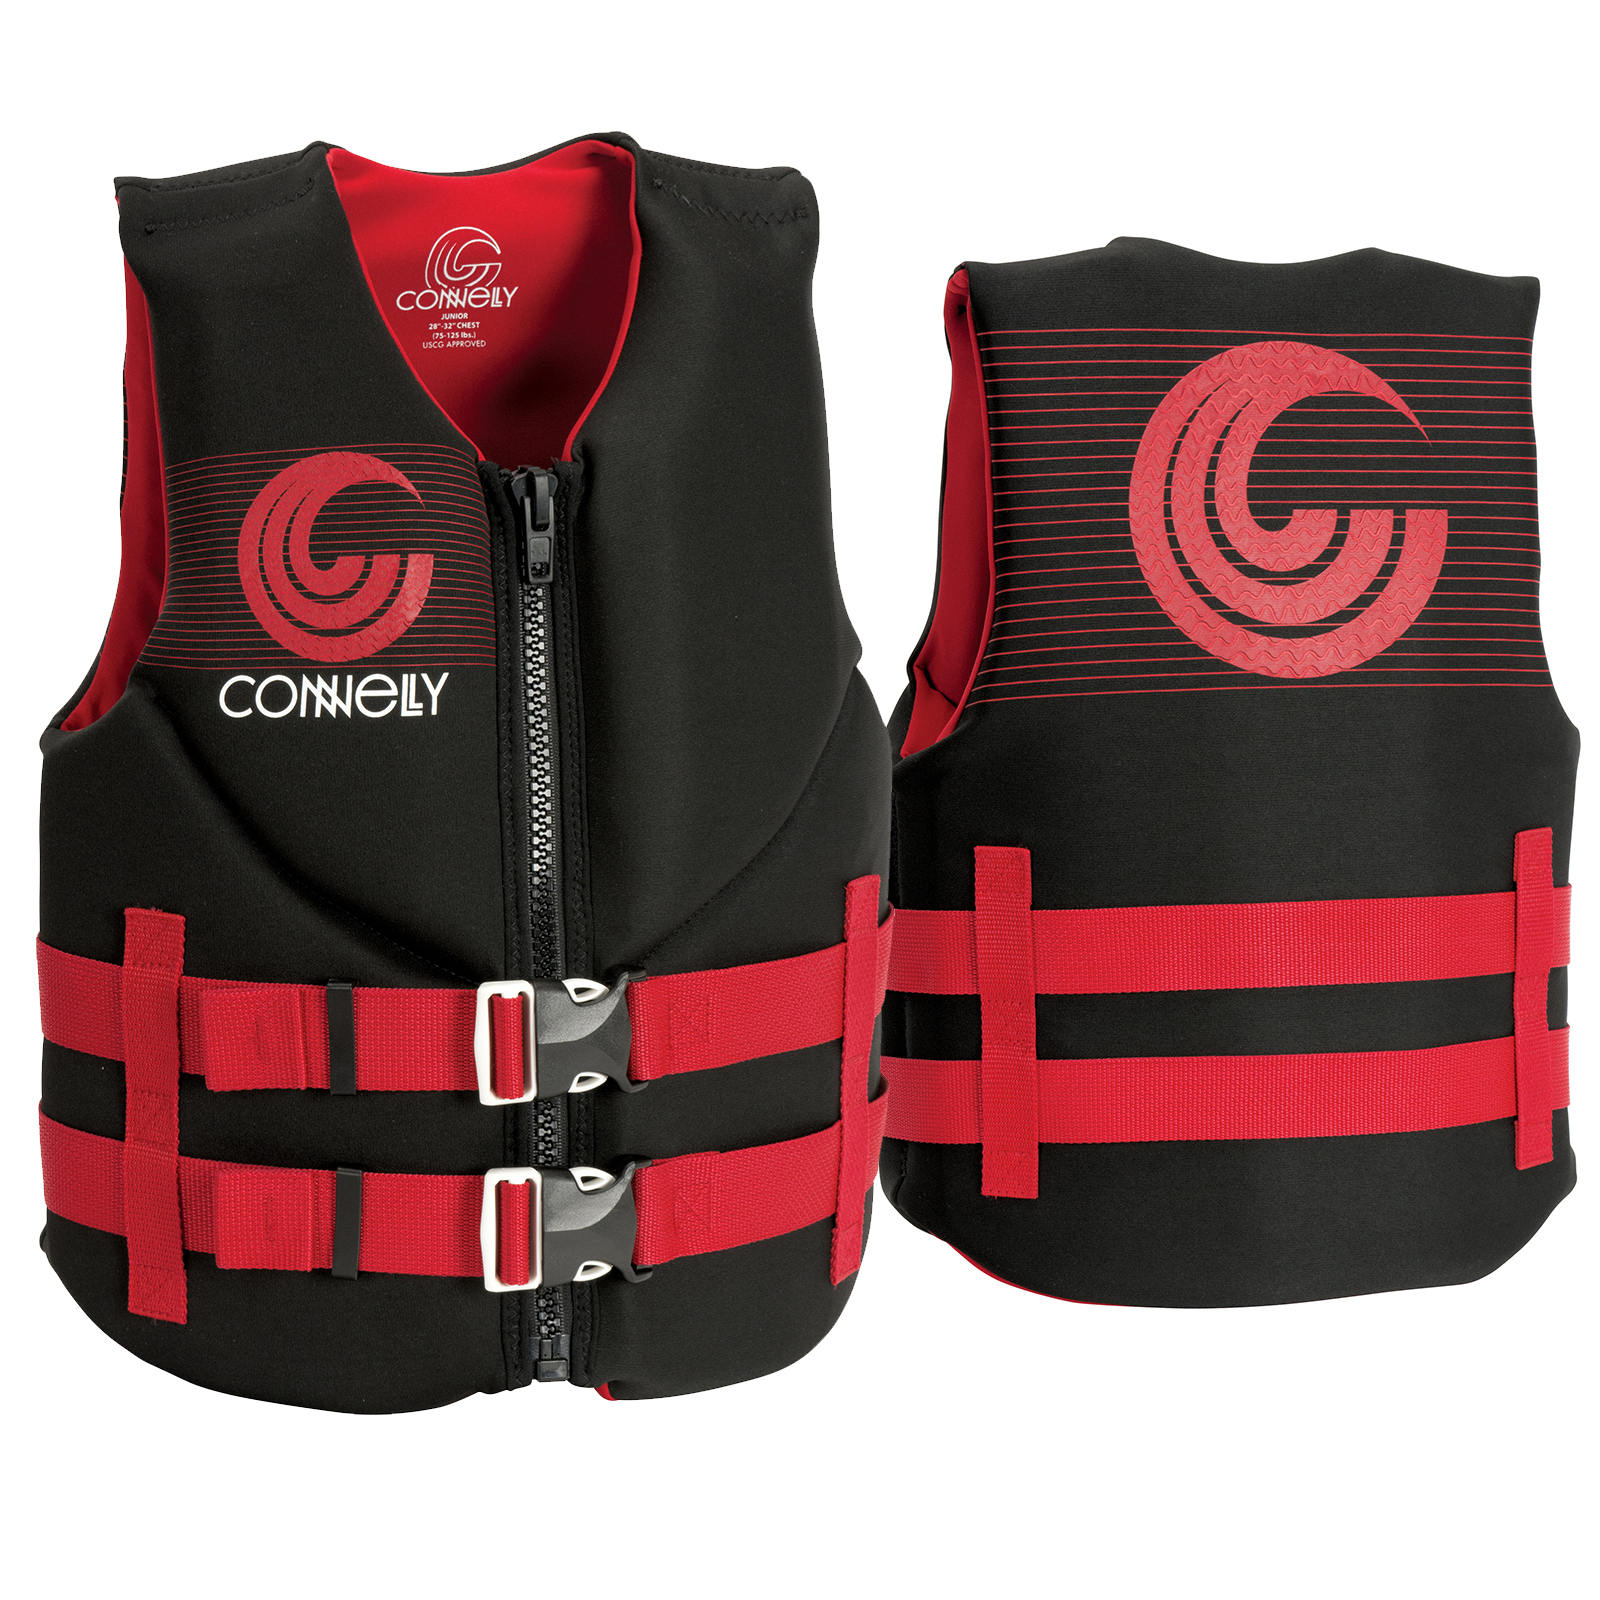 BOY'S PROMO NEO LIFE VEST - JUNIOR 35-55KG CONNELLY 2019